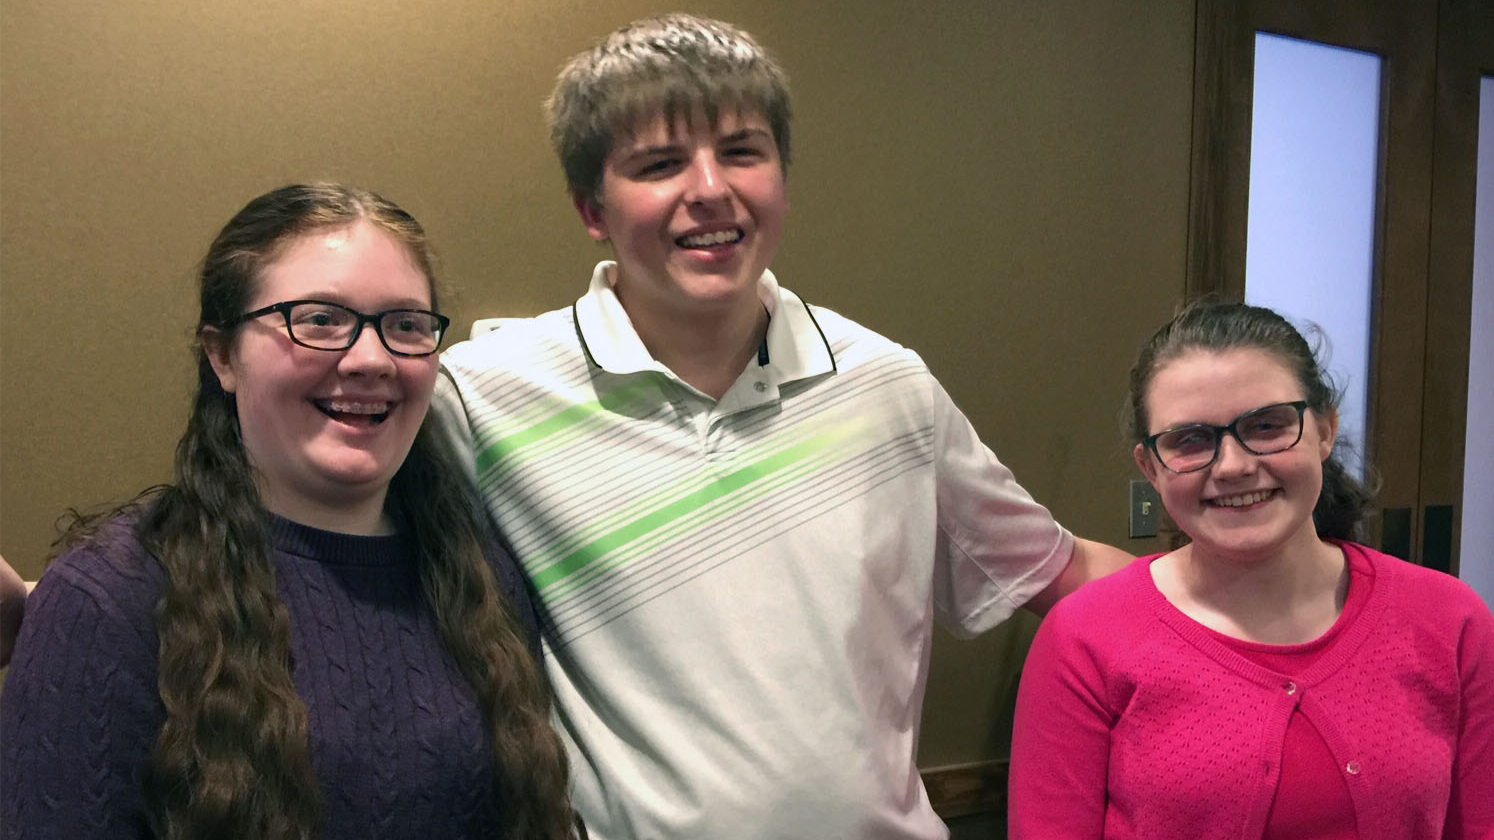 Image of three middle school students